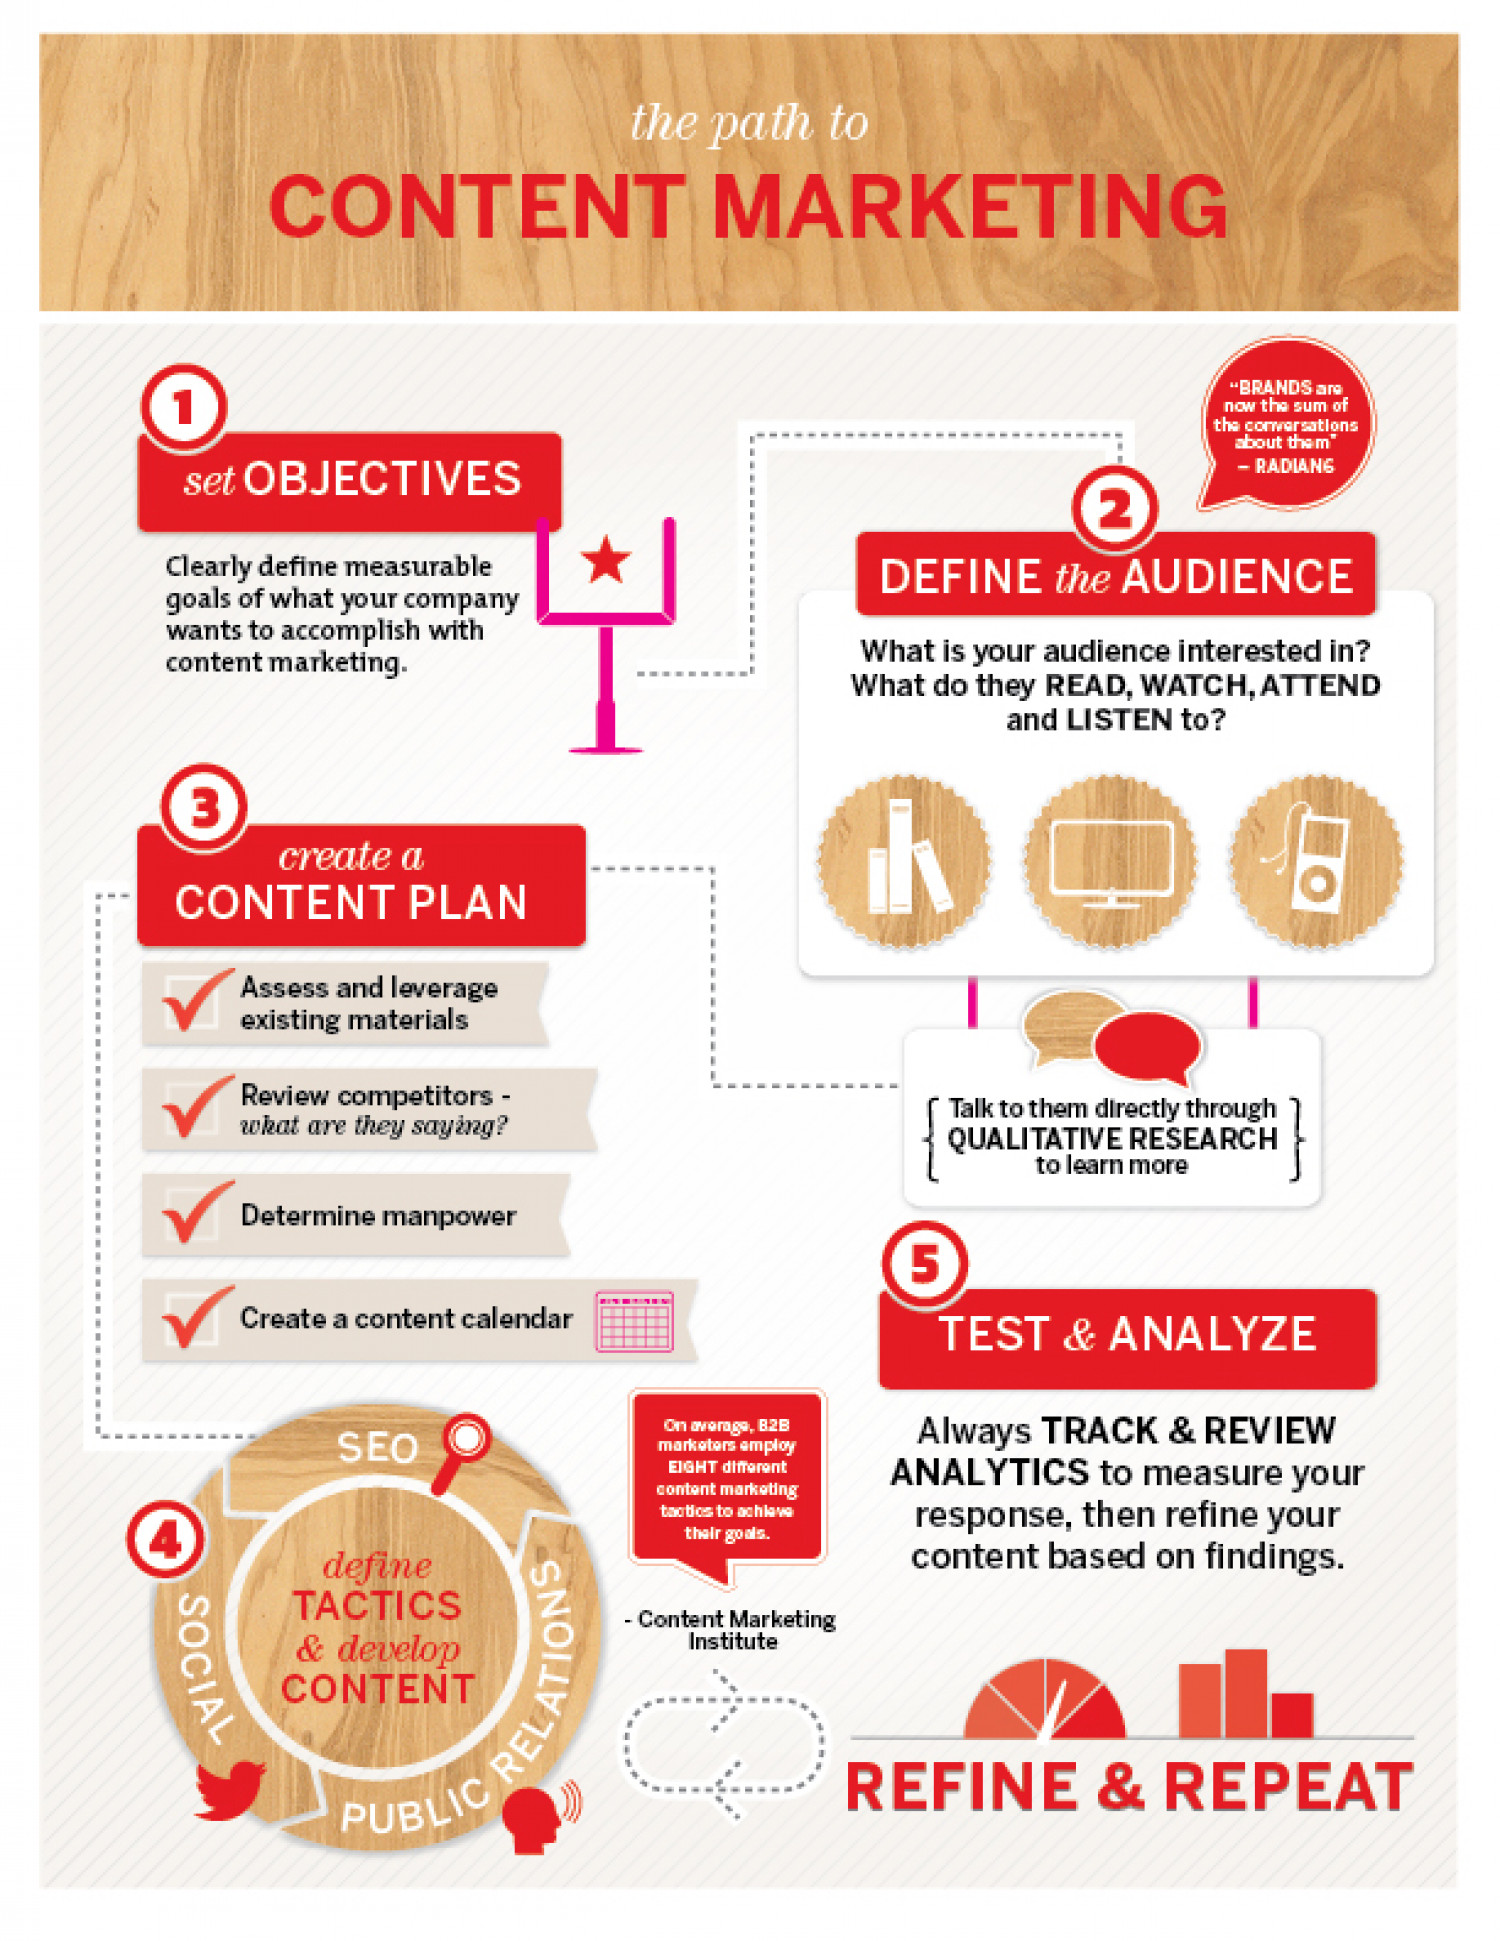 Building Brand with Content Marketing Infographic